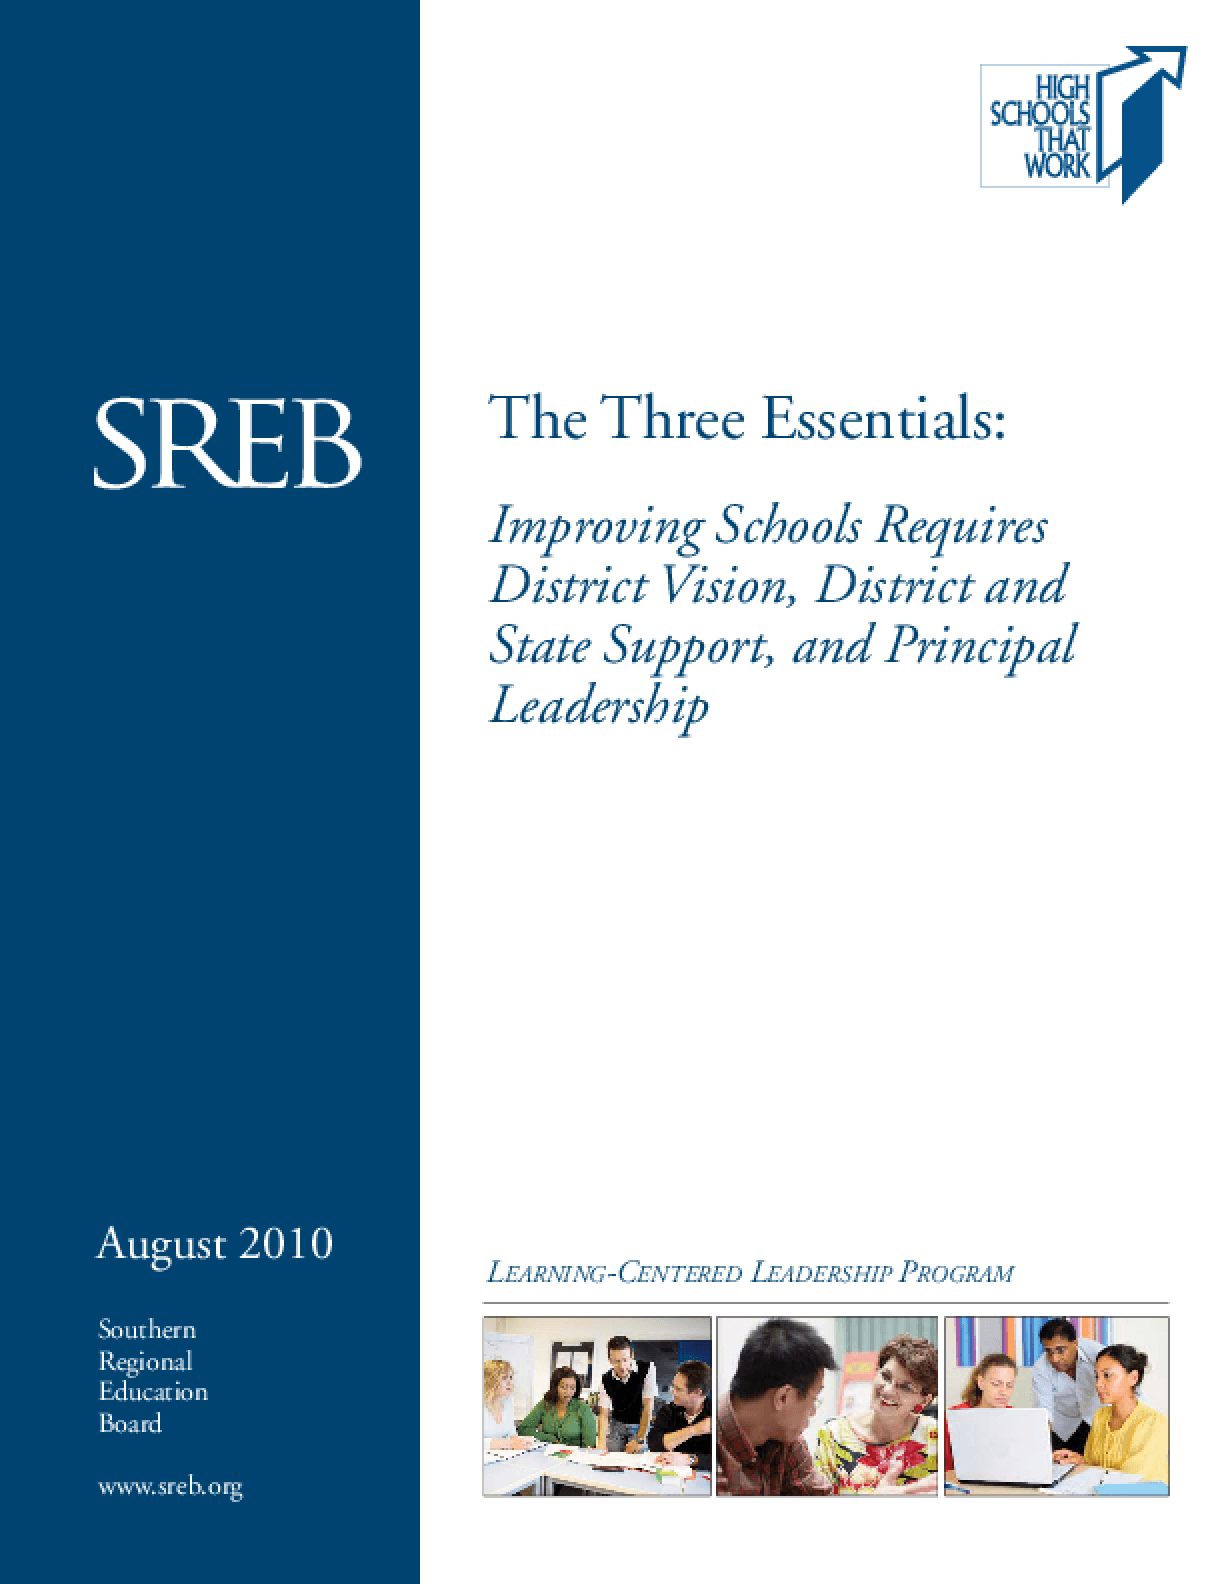 The Three Essentials: Improving Schools Requires District Vision, District and State Support, and Principal Leadership